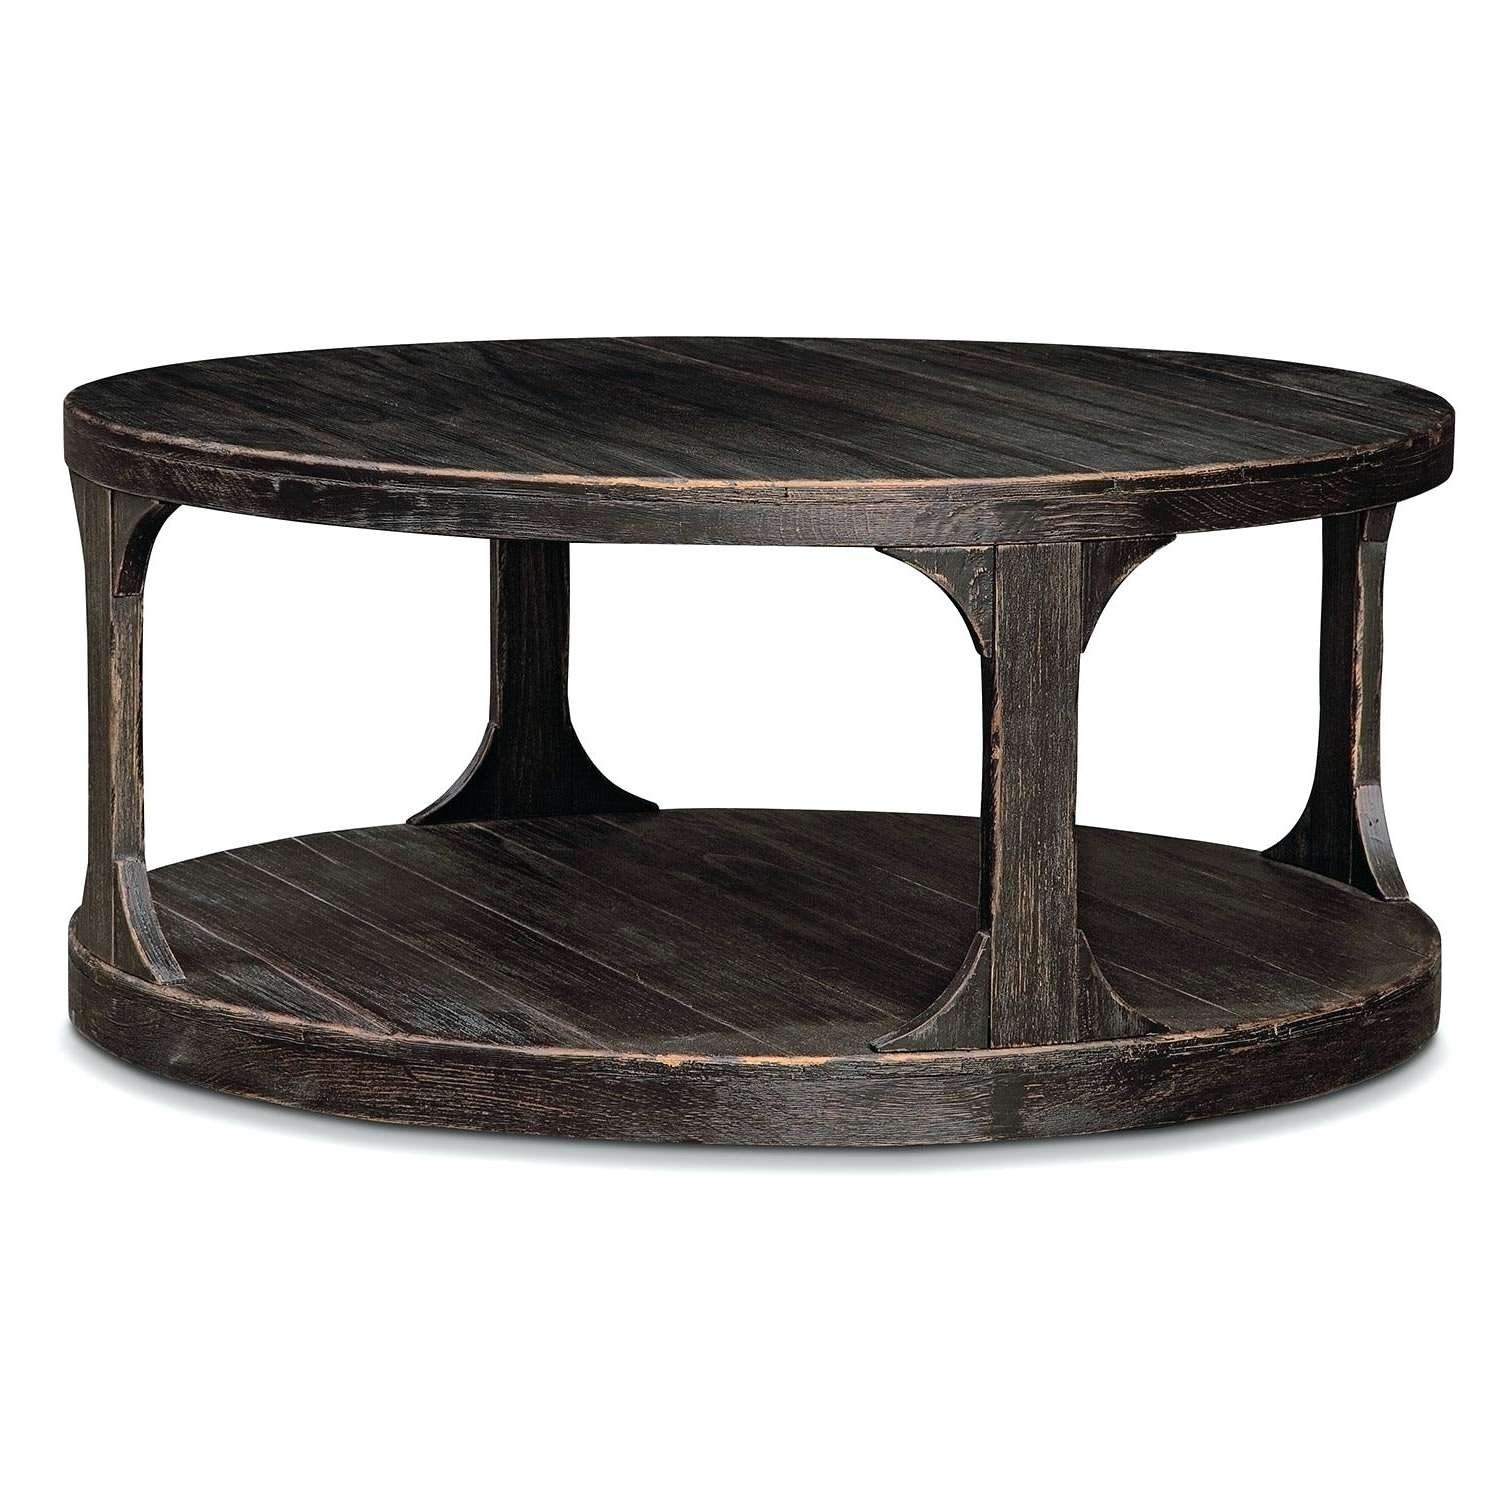 Home ~ Decor Of Corner Coffee Table With Ideas About Triangle On Pertaining To 2018 Corner Coffee Tables (View 9 of 20)